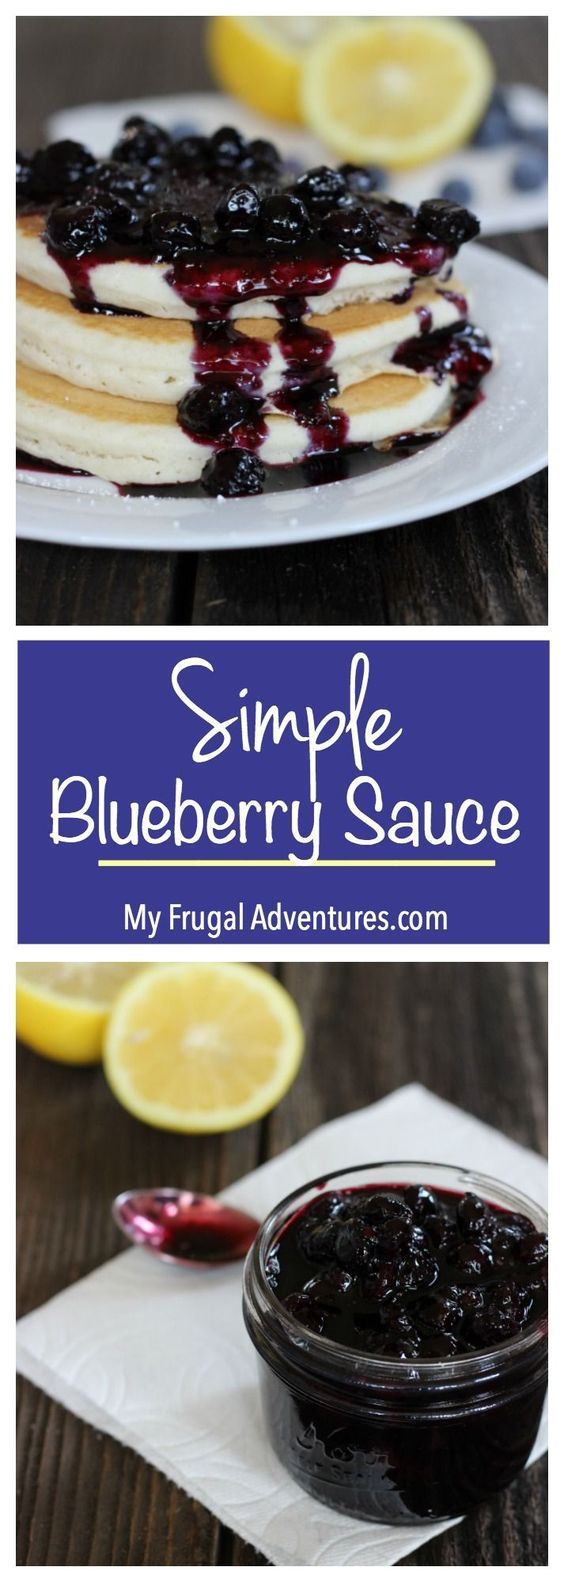 Simple Homemade Blueberry Sauce | Recipe | Homemade, Cakes and Sauces